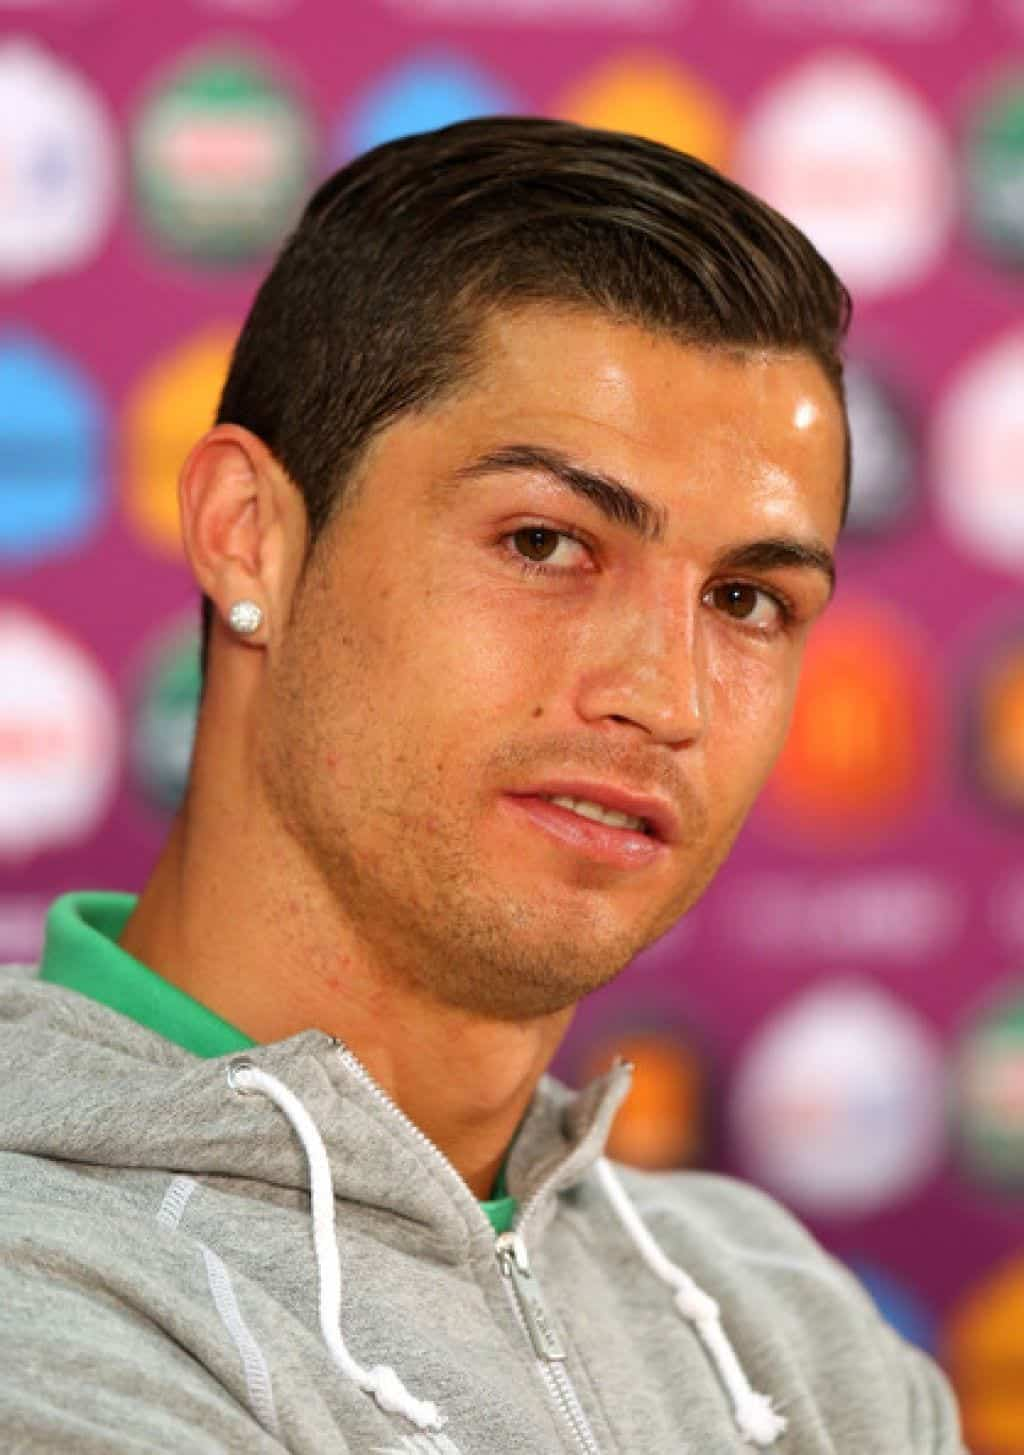 cristiano-ronaldo-hair-54e6f159cf2b1 Cristiano Ronaldo Hairstyles-20 Most Popular Hair Cuts Pics